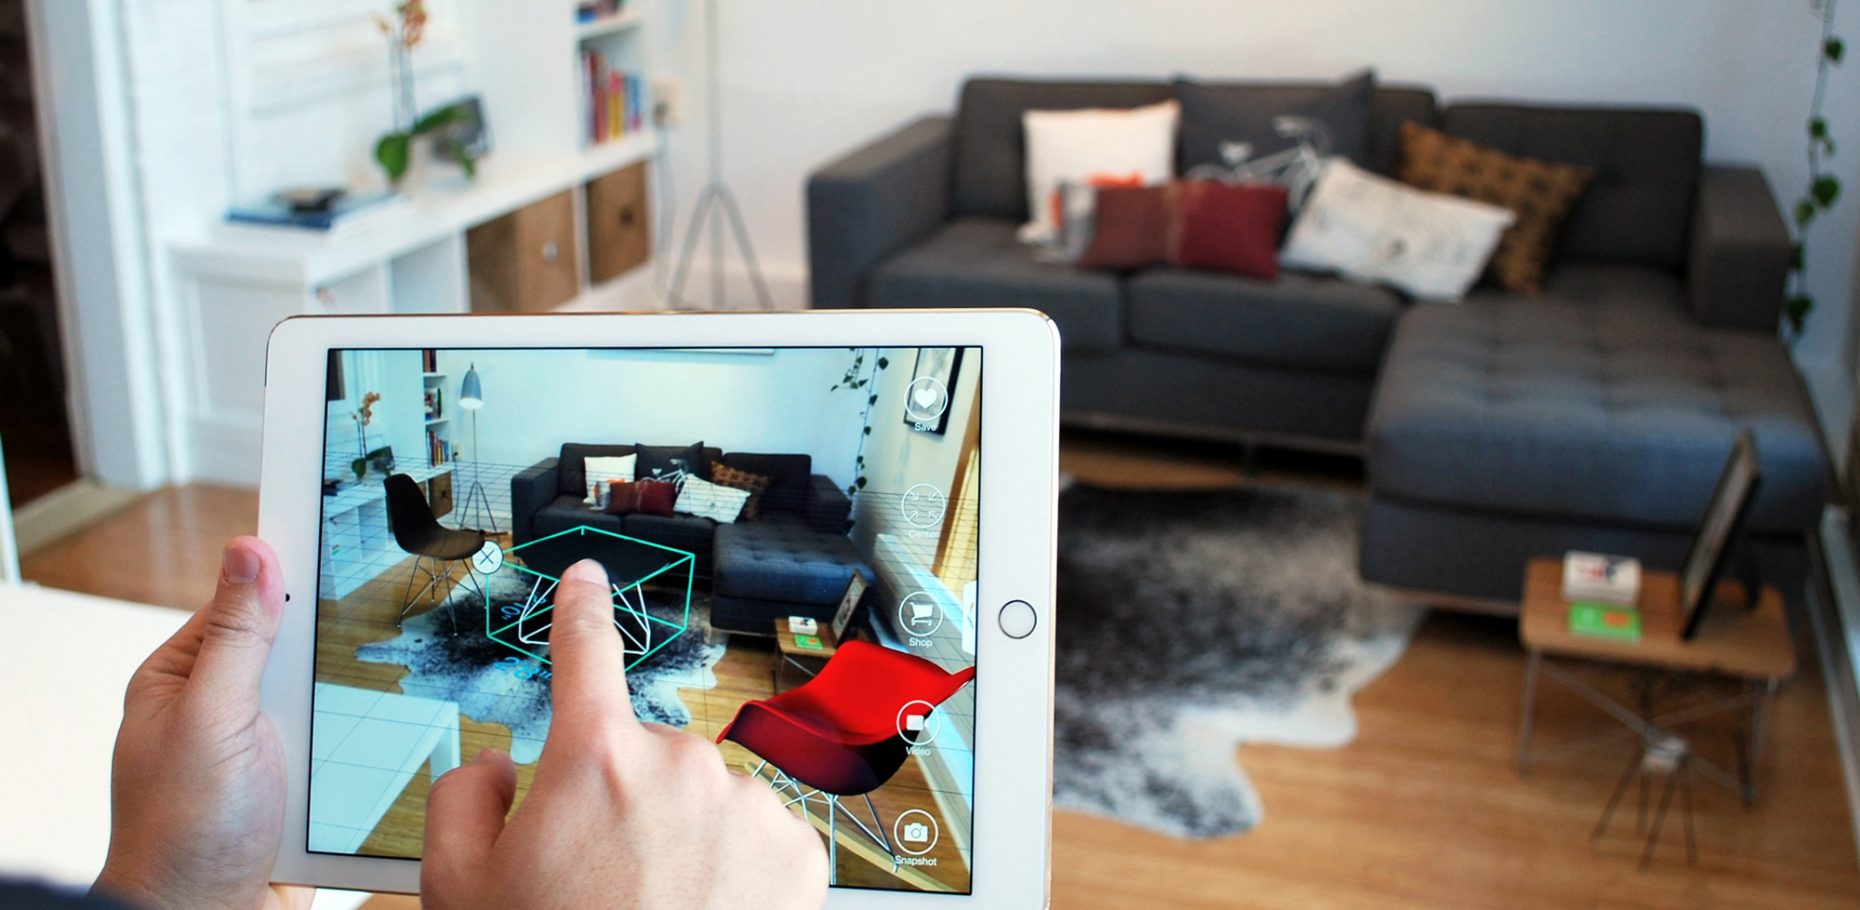 & The Top 5 Virtual Reality and Augmented Reality Apps for Architects